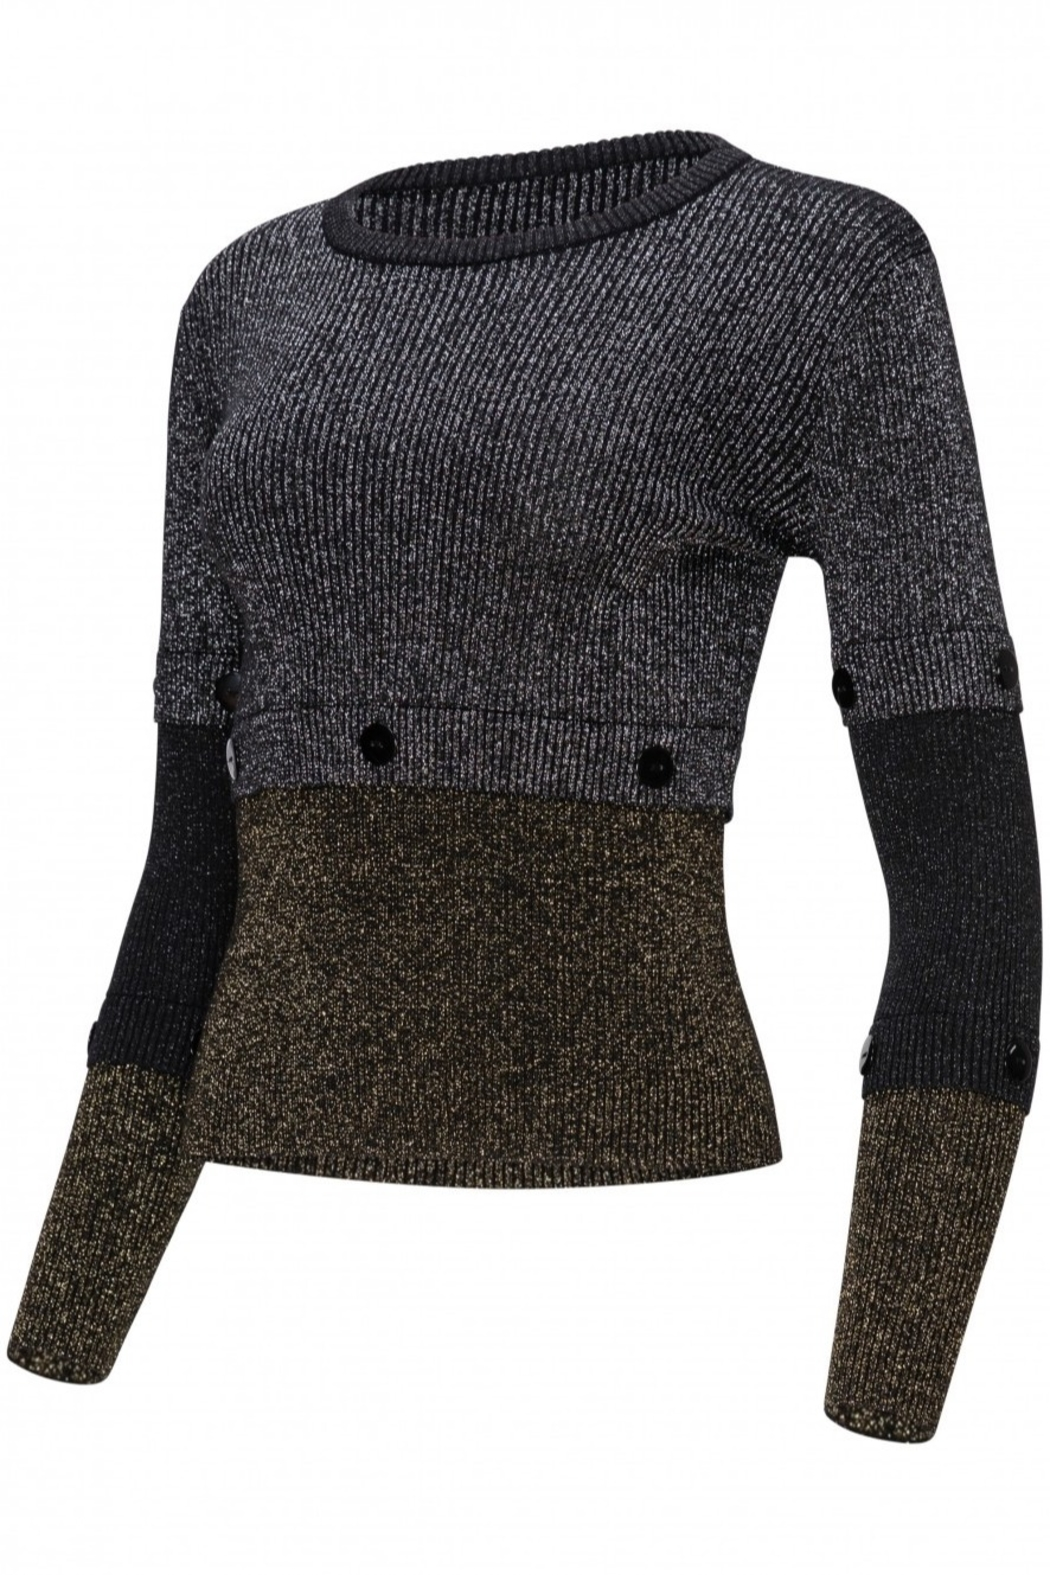 Yal NY Lurex black/gold/silver sweater - Front Full Image